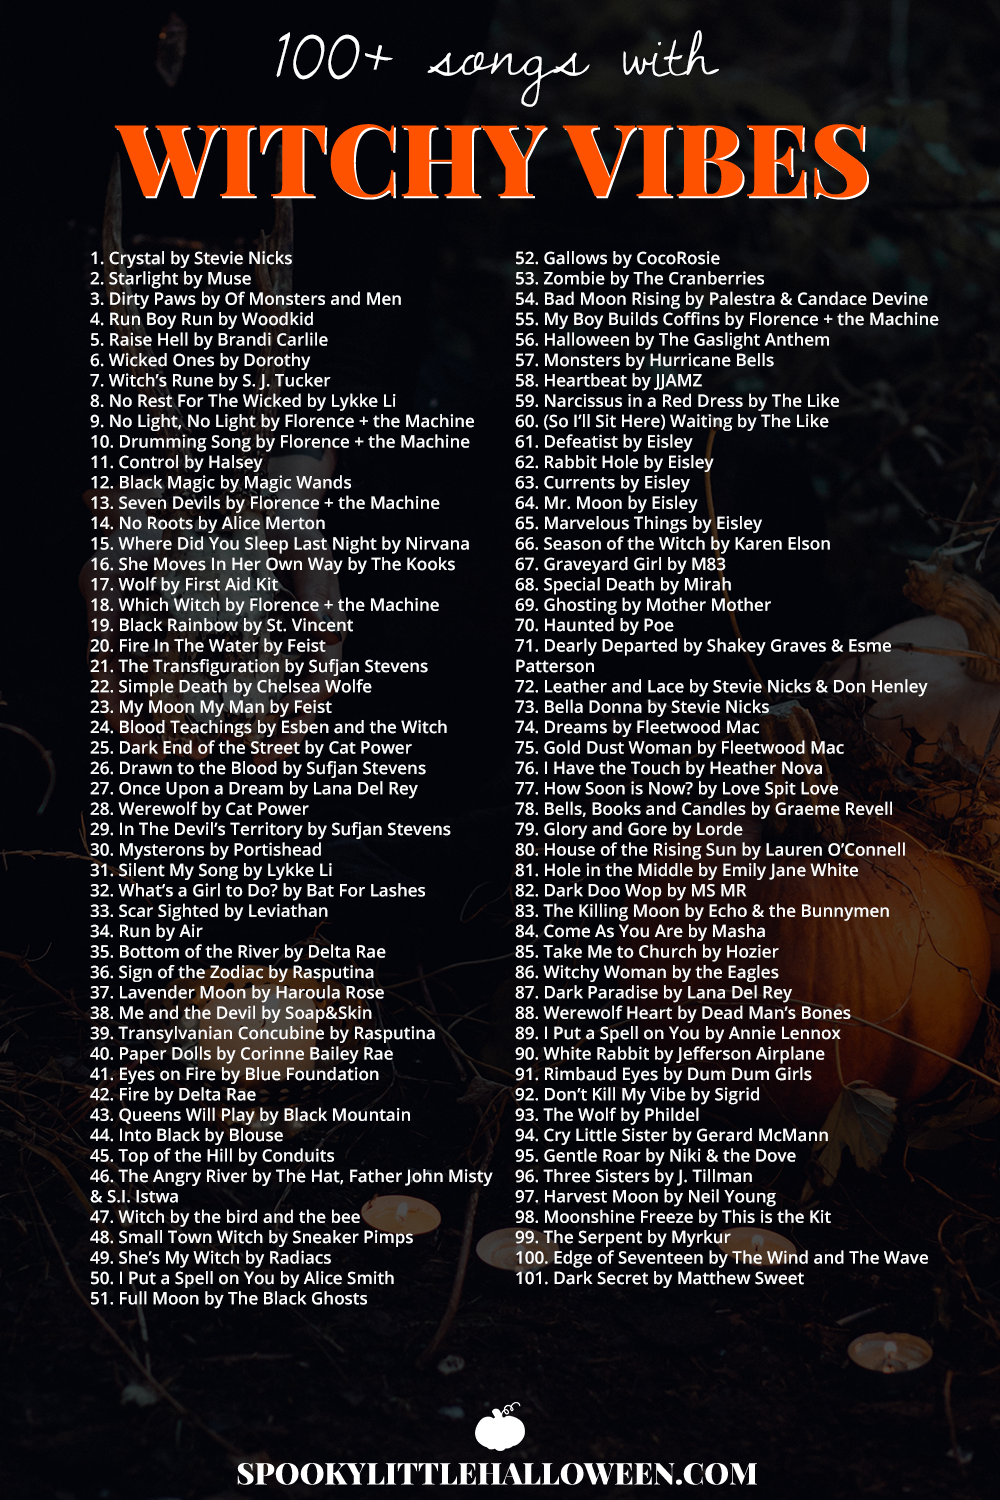 witchy songs vibes halloween playlist favorite quotes song music spooky scary party witch spookylittlehalloween witches adults movies adult tags printable